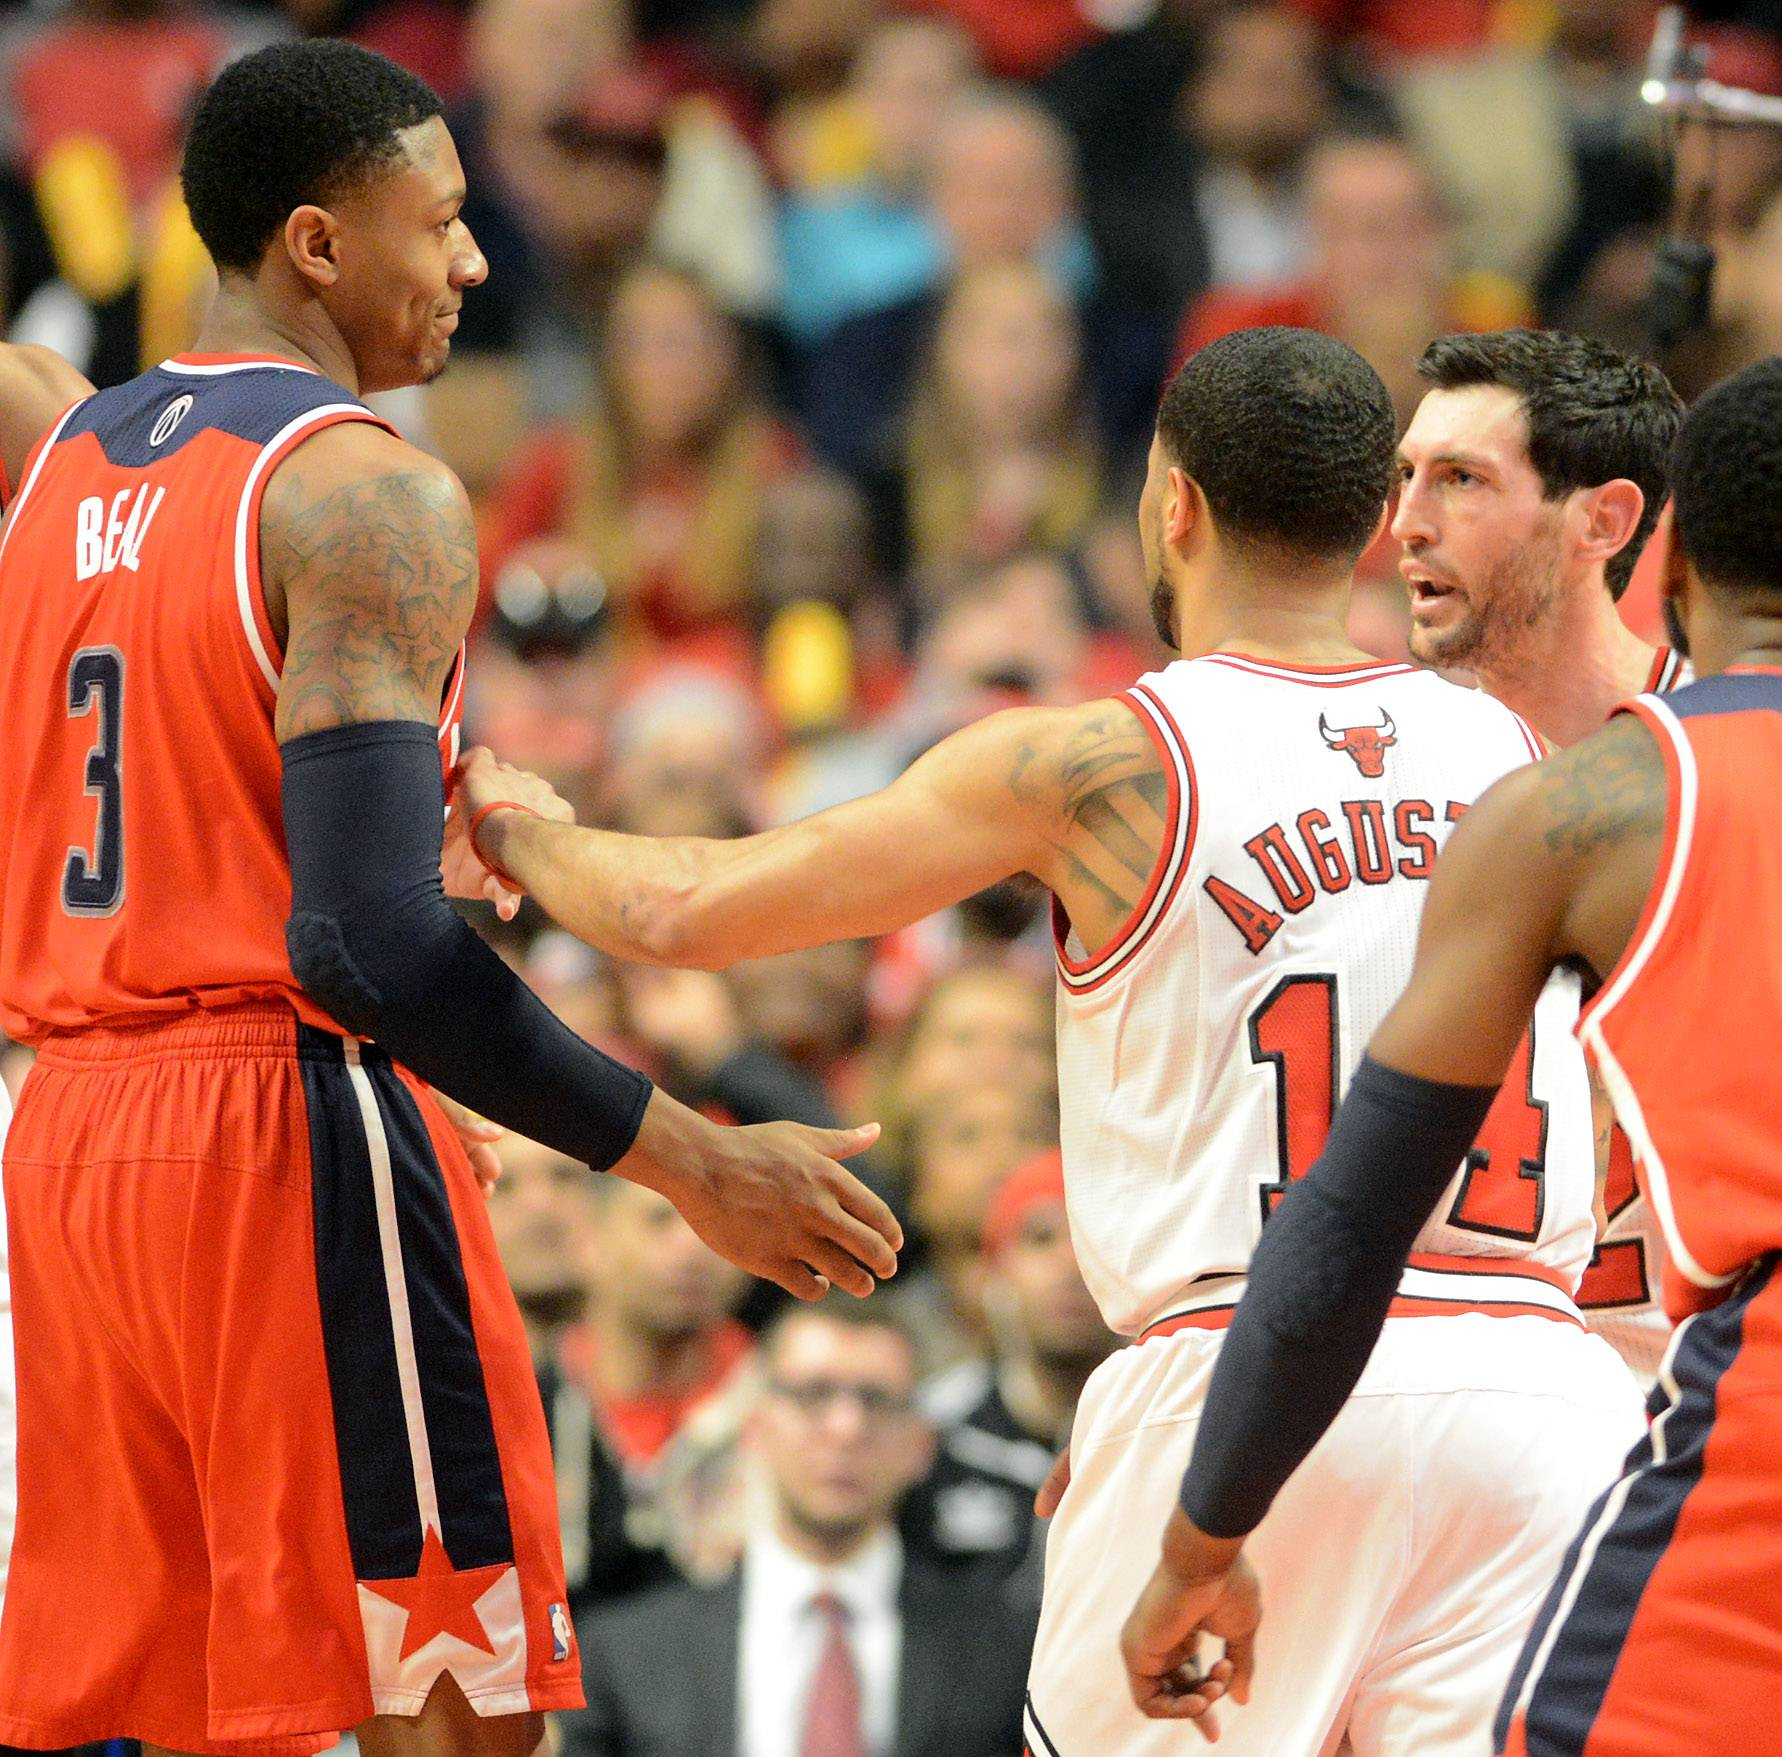 Washington Wizards guard Bradley Beal (3) and Chicago Bulls guard Kirk Hinrich (12) get into a tussle in the second quarter.